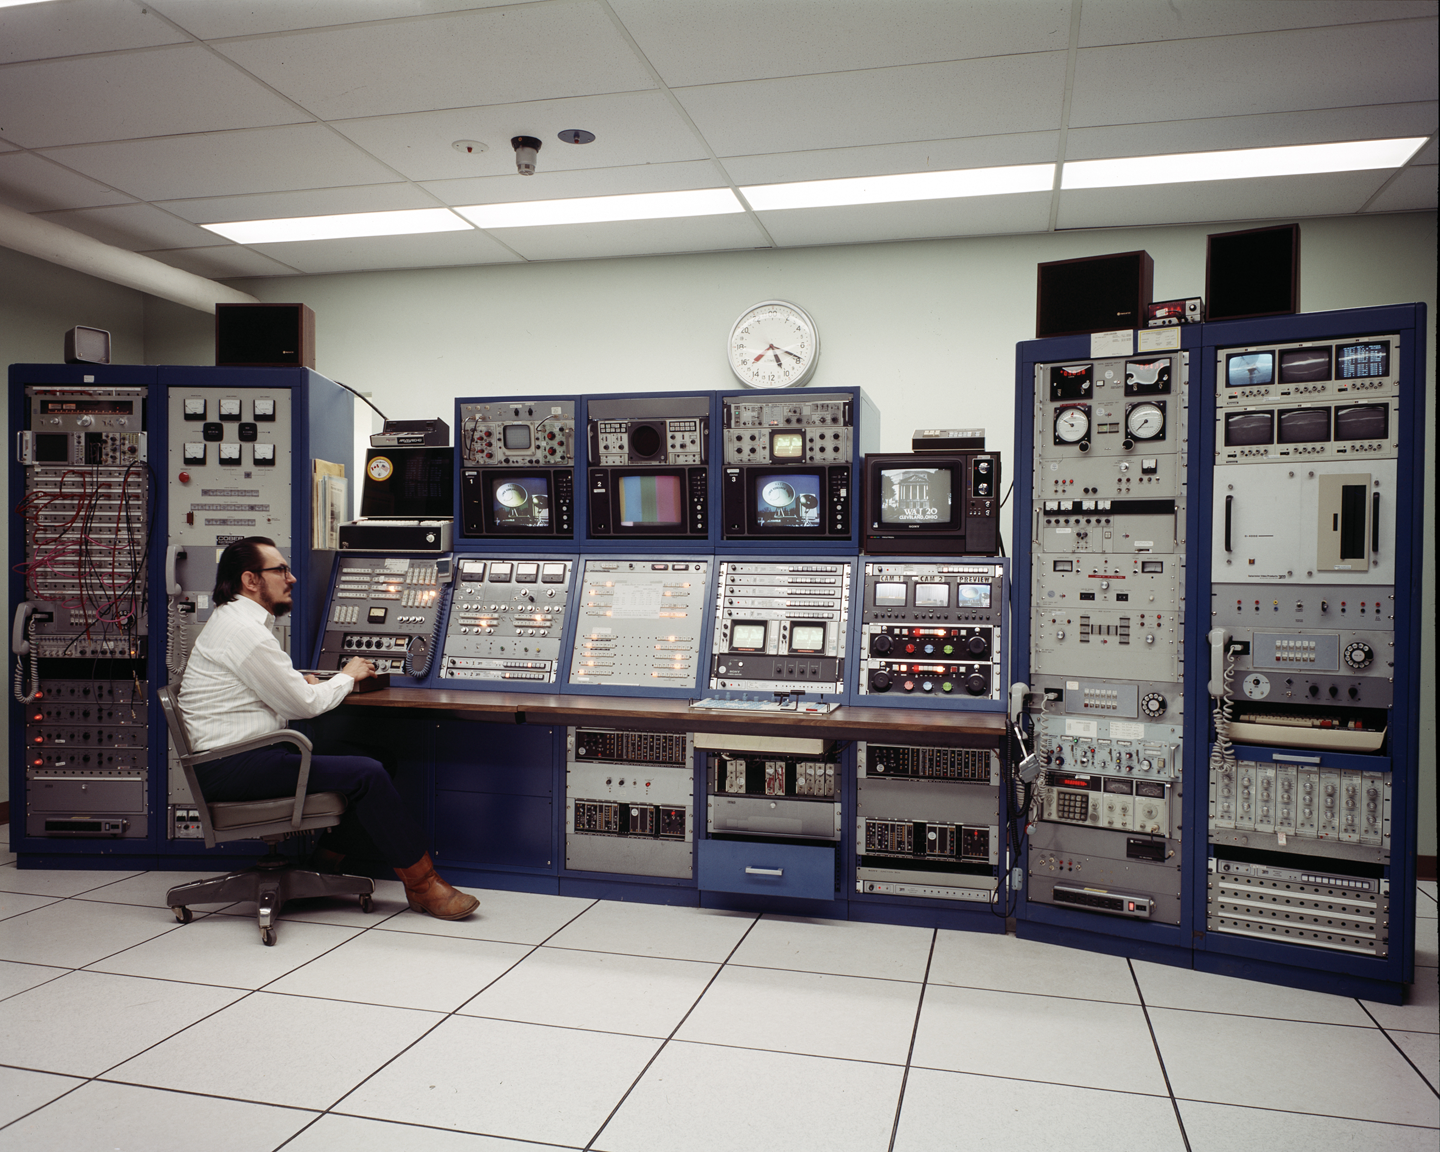 control-panel-in-the-nasa